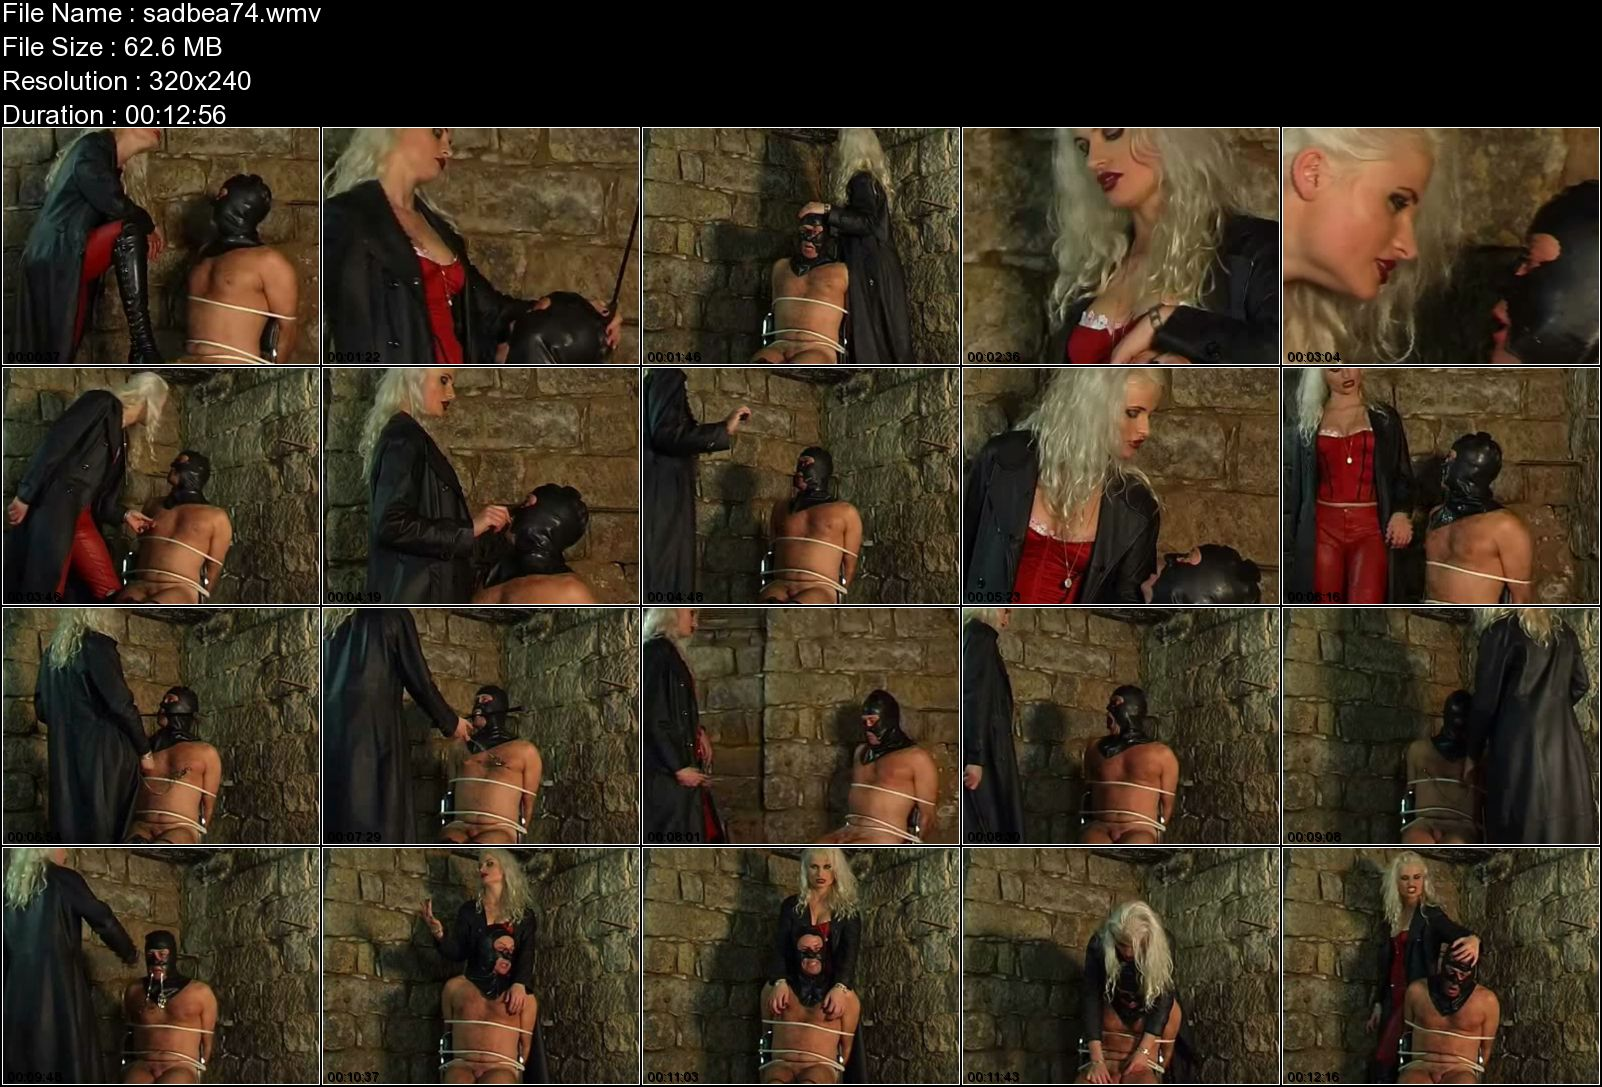 SYONERA VON STYX In Scene: INTERROGATION - SADOBEAUTIES - LQ/240p/WMV